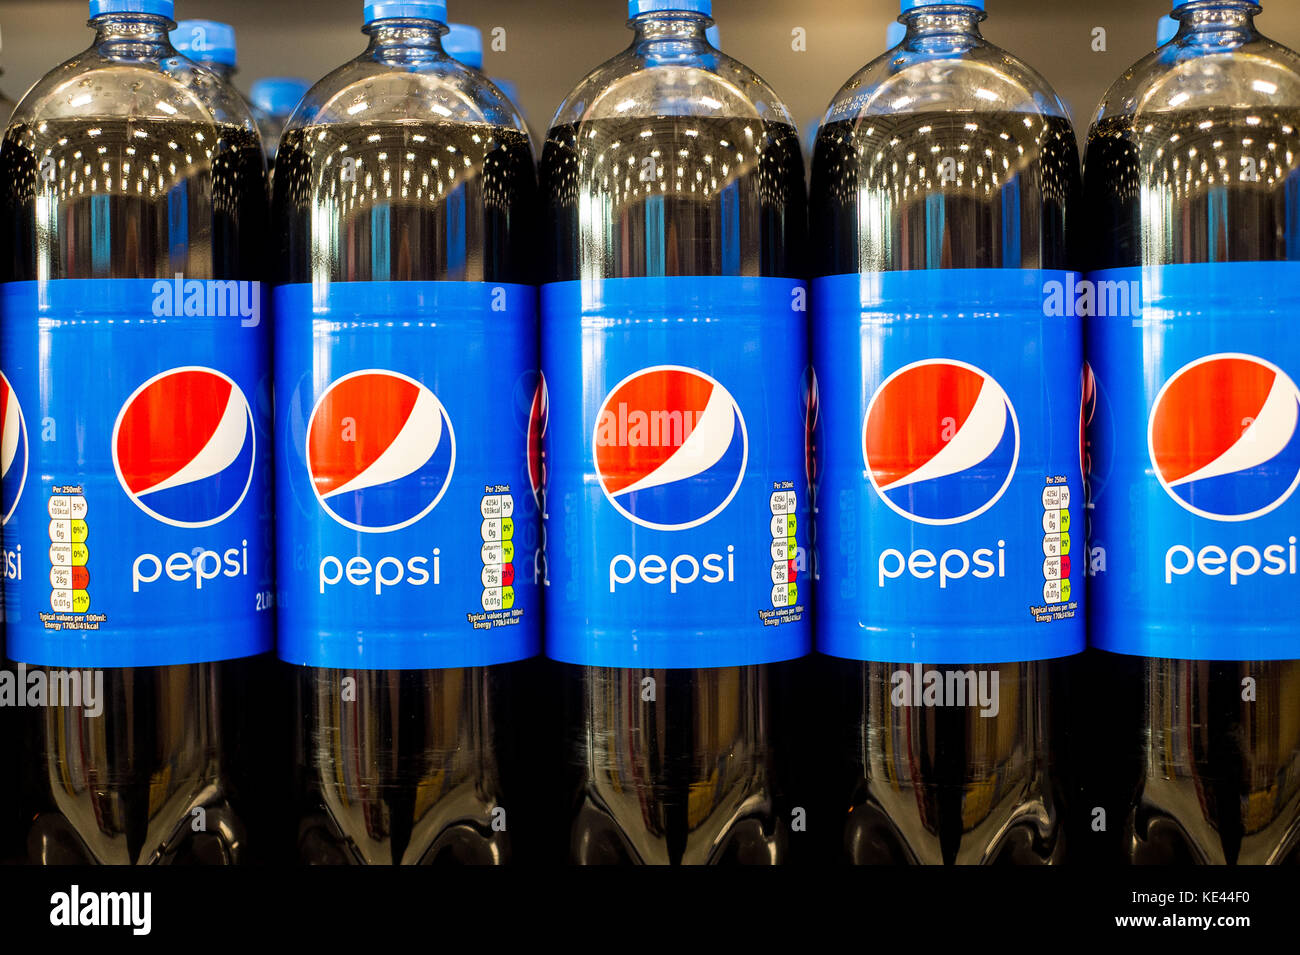 pepsi cola spain Supply chain data for pepsi cola manufacturing international ltd in cidra, puerto rico its top supplier is pepsi cola trading ireland ireland is.